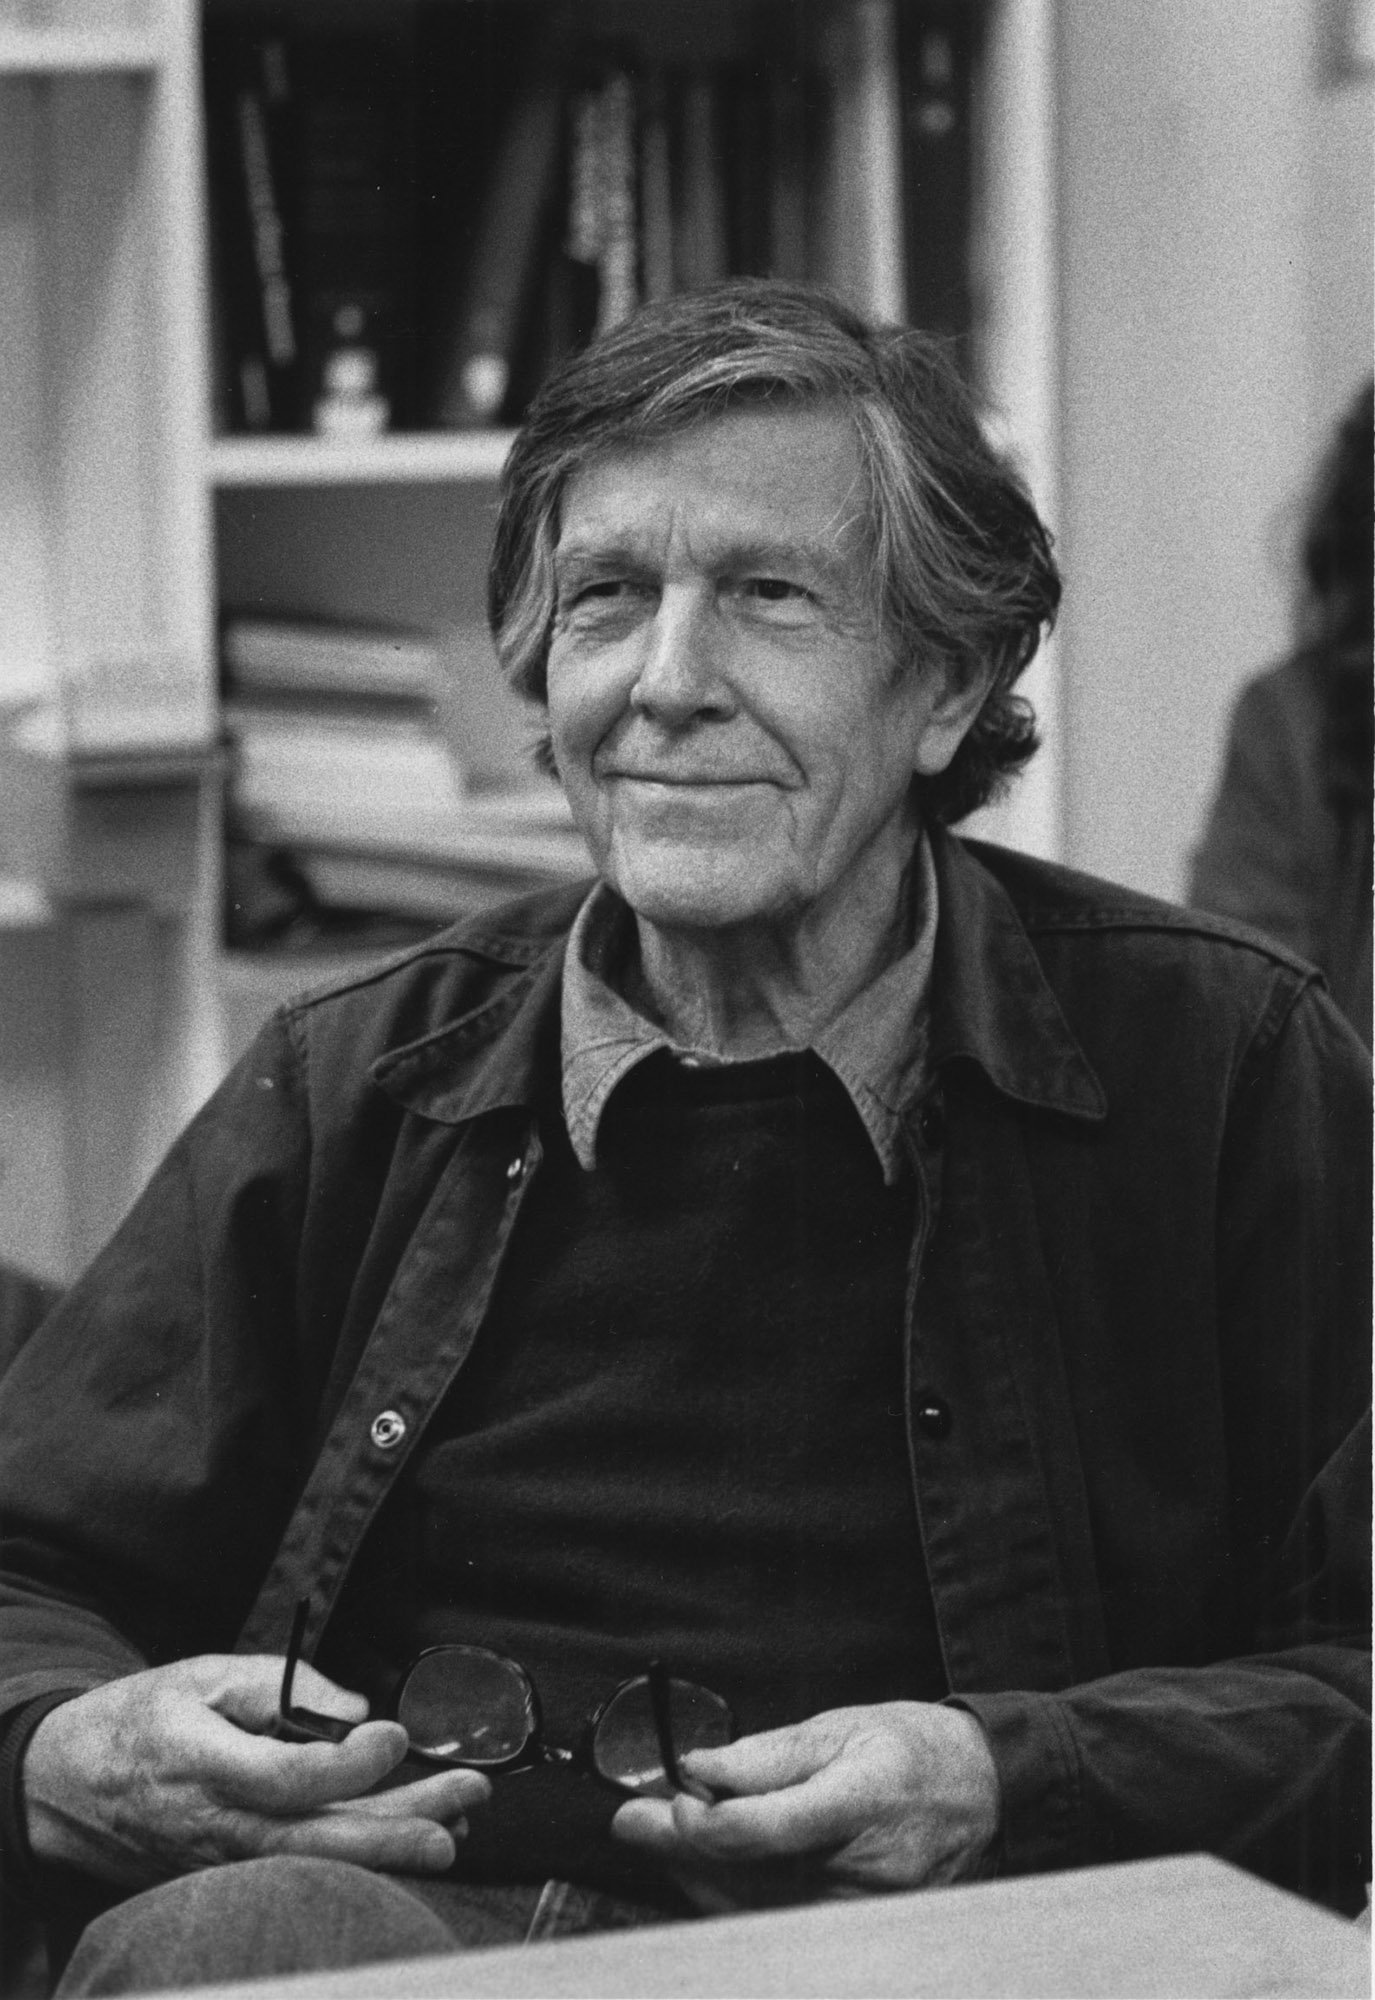 John Cage is a famous composer, creator of the piece of music.